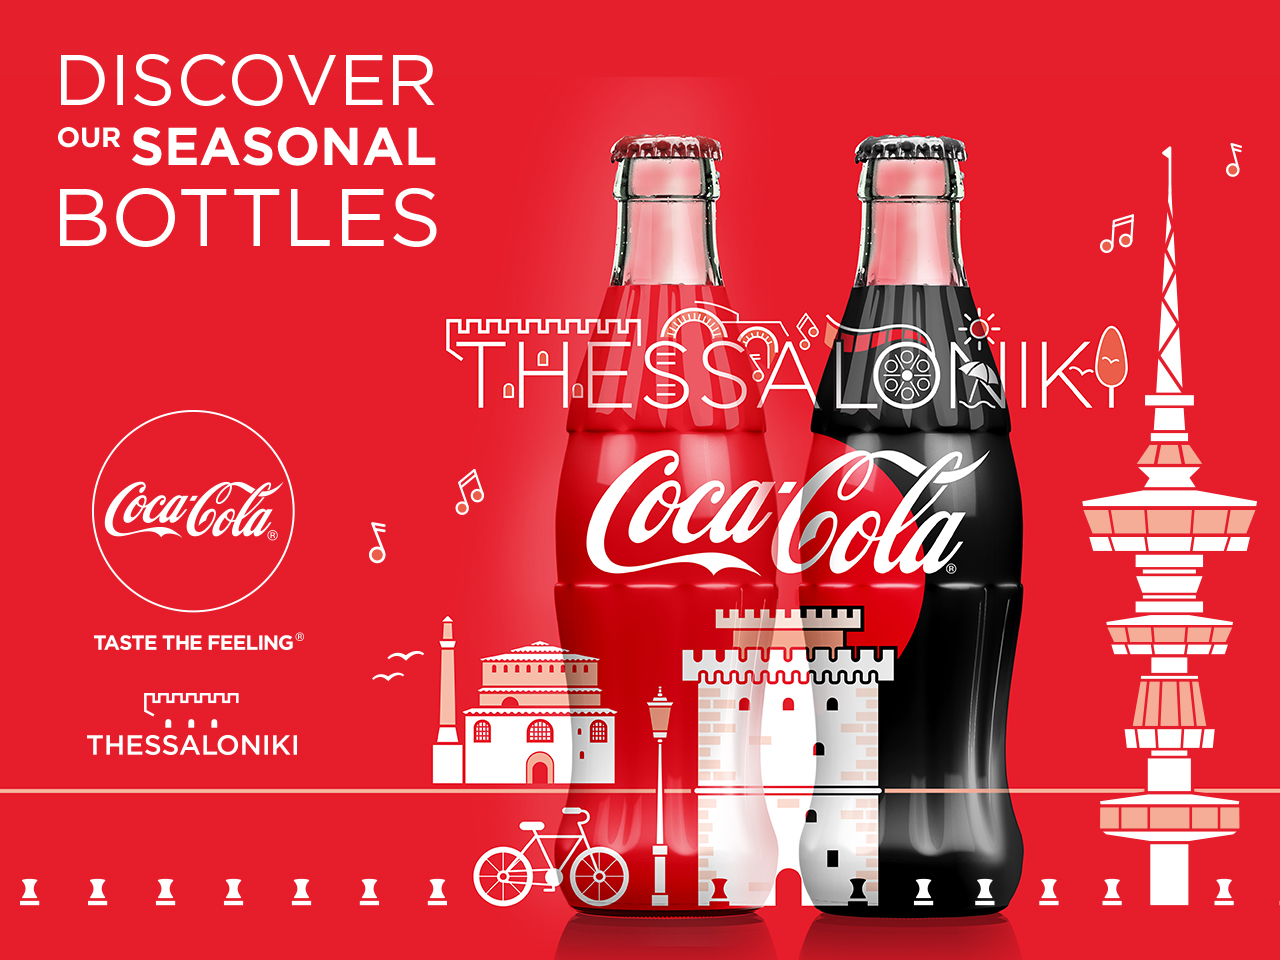 Coca-Cola Thessaloniki limited edition key visual